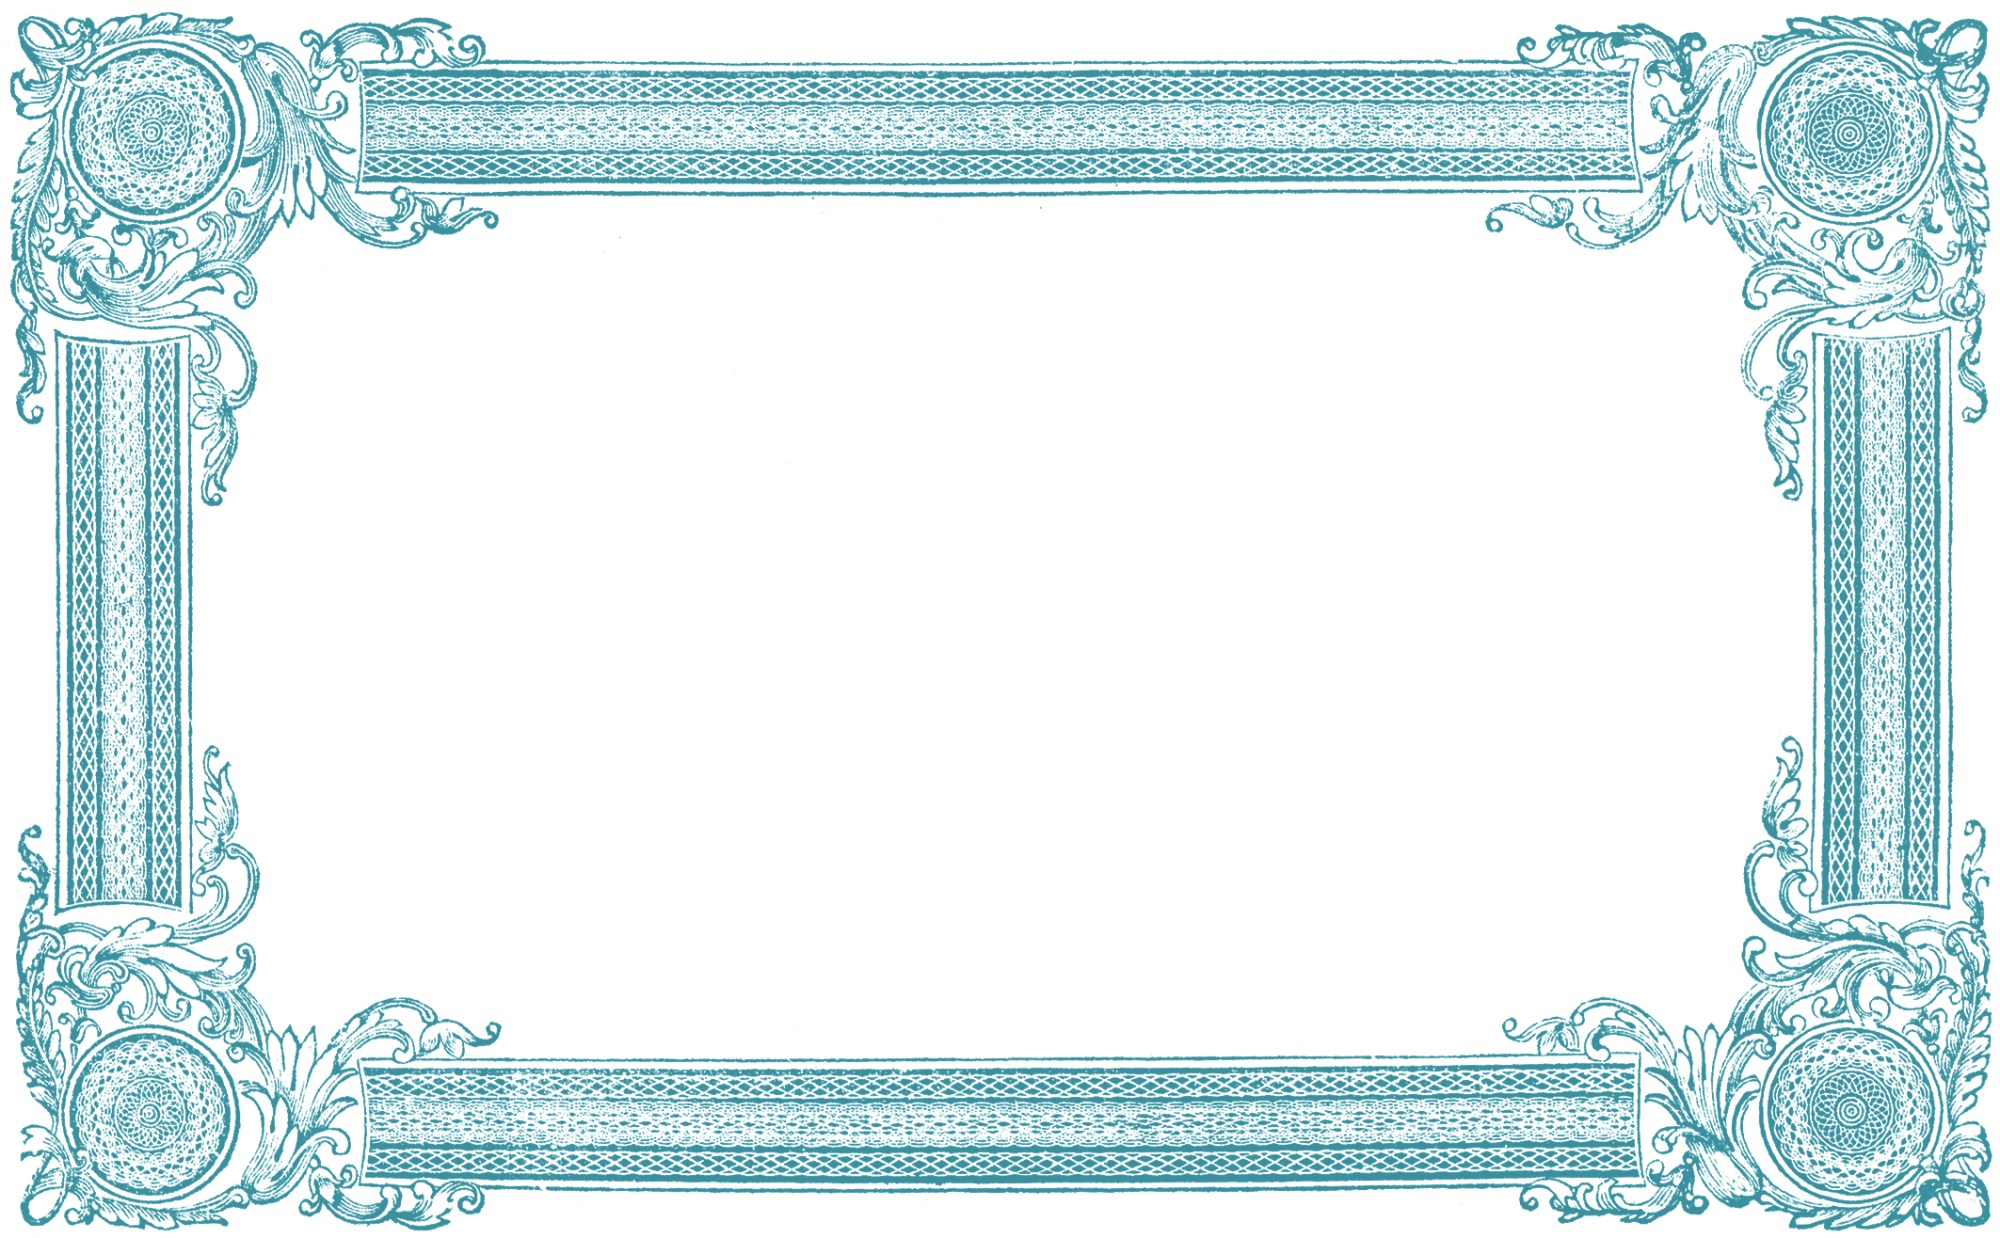 hight resolution of free frame clip art images